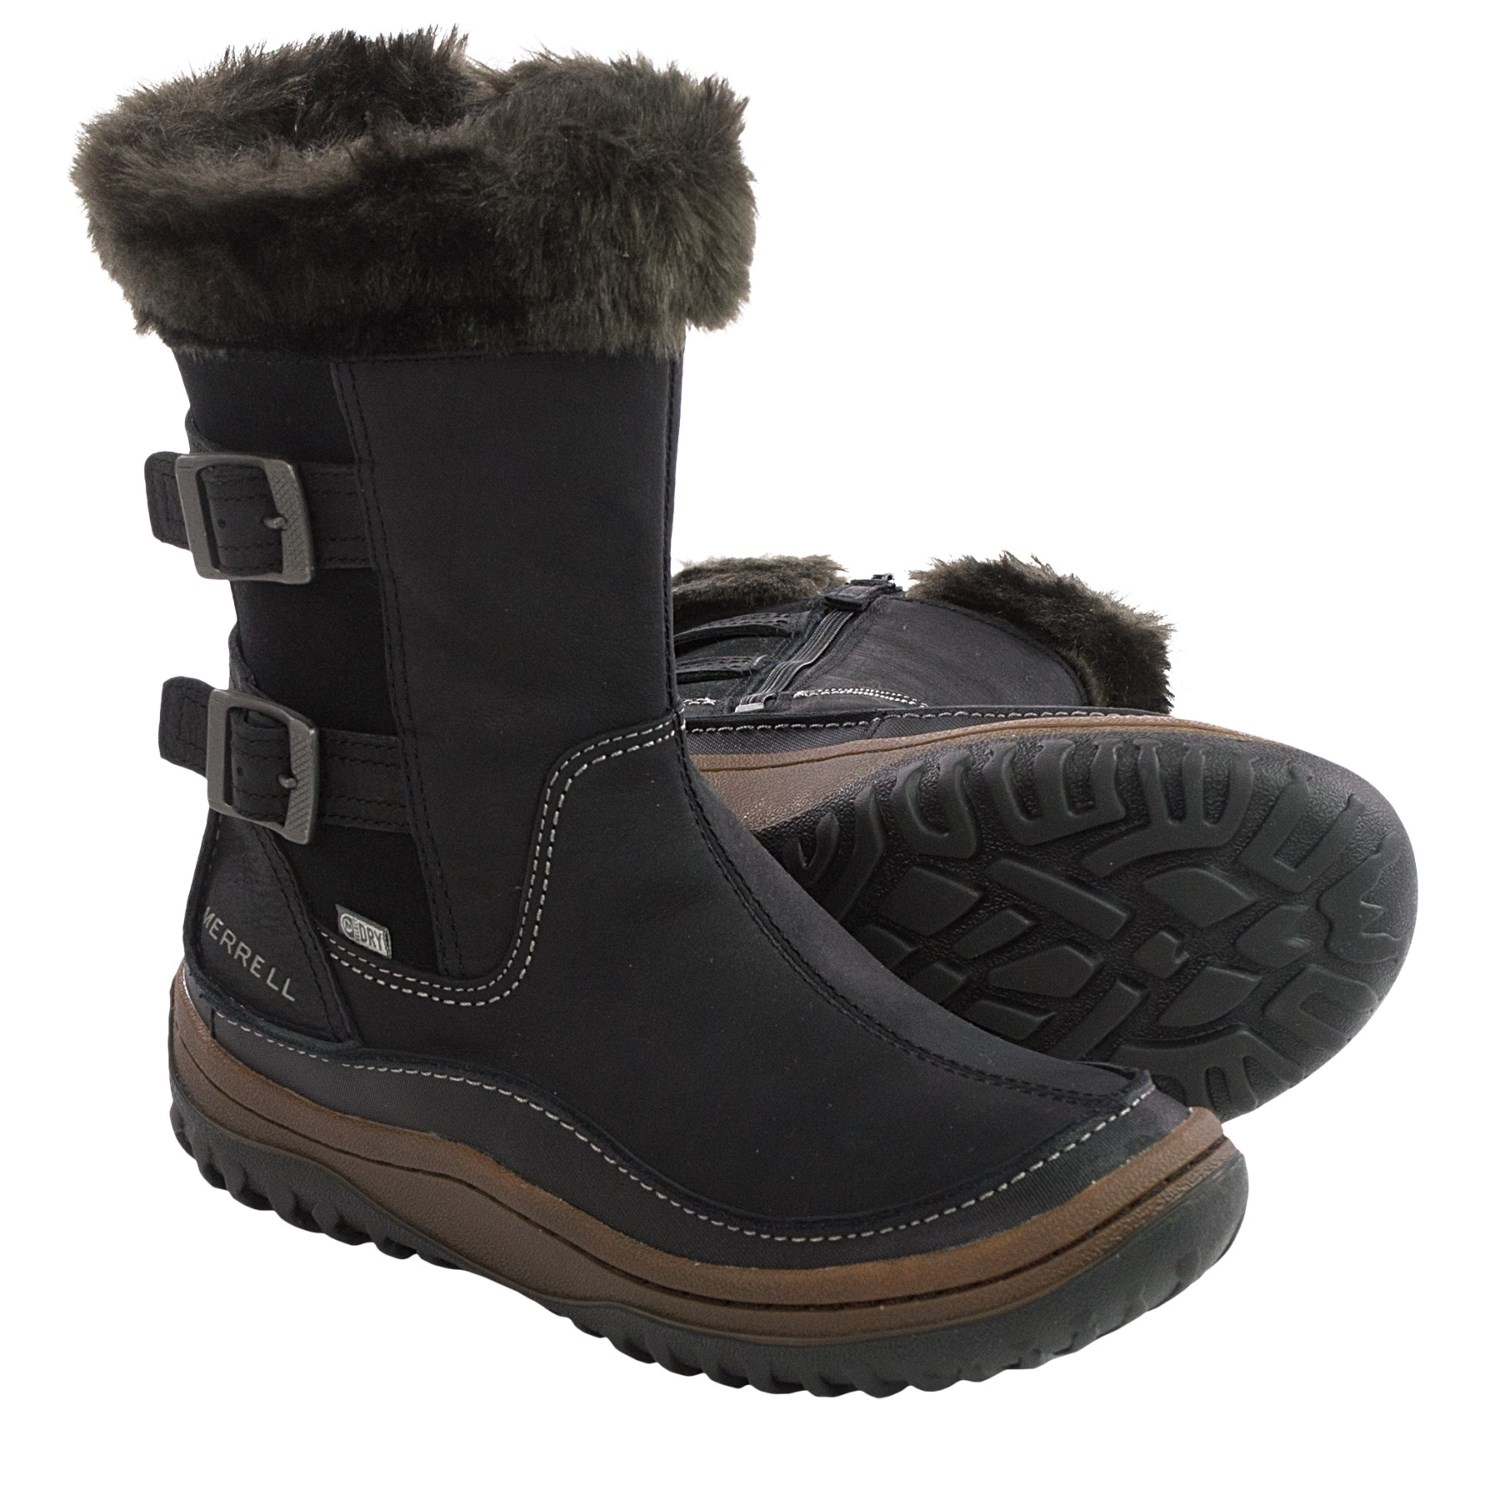 Womens Waterproof Insulated Shoes